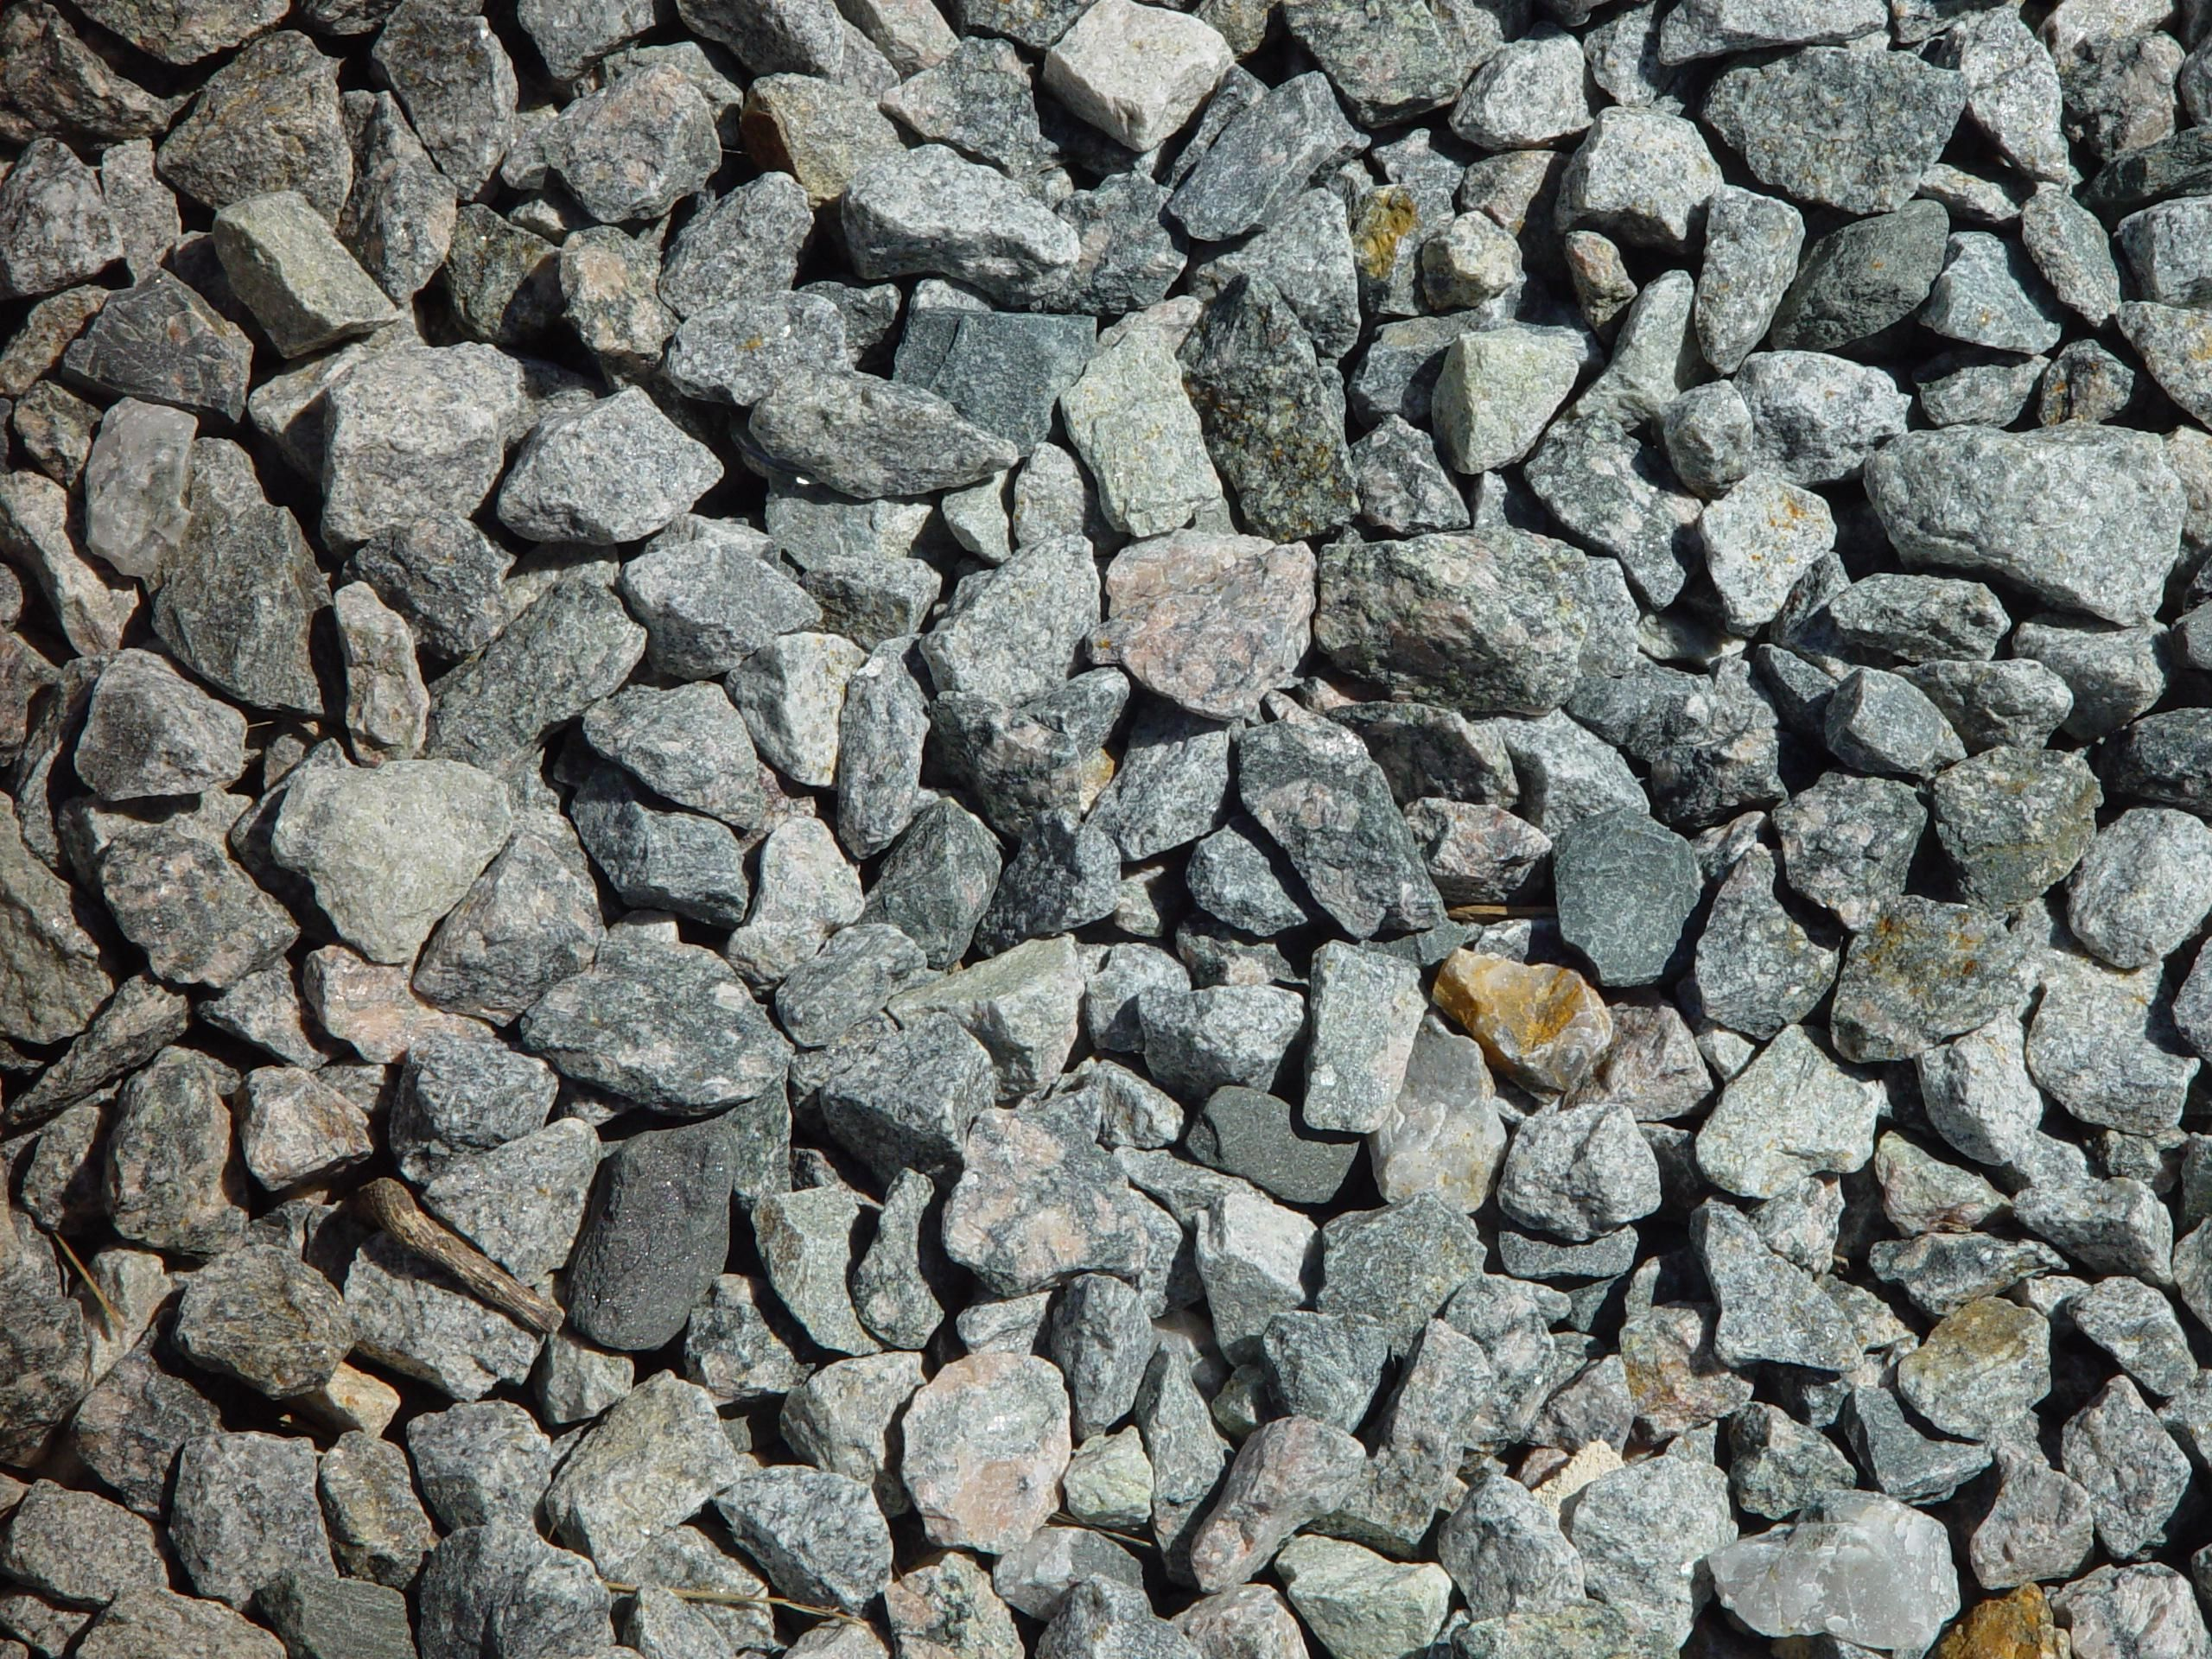 gravel -Classification of Aggregates Used In Construction Work